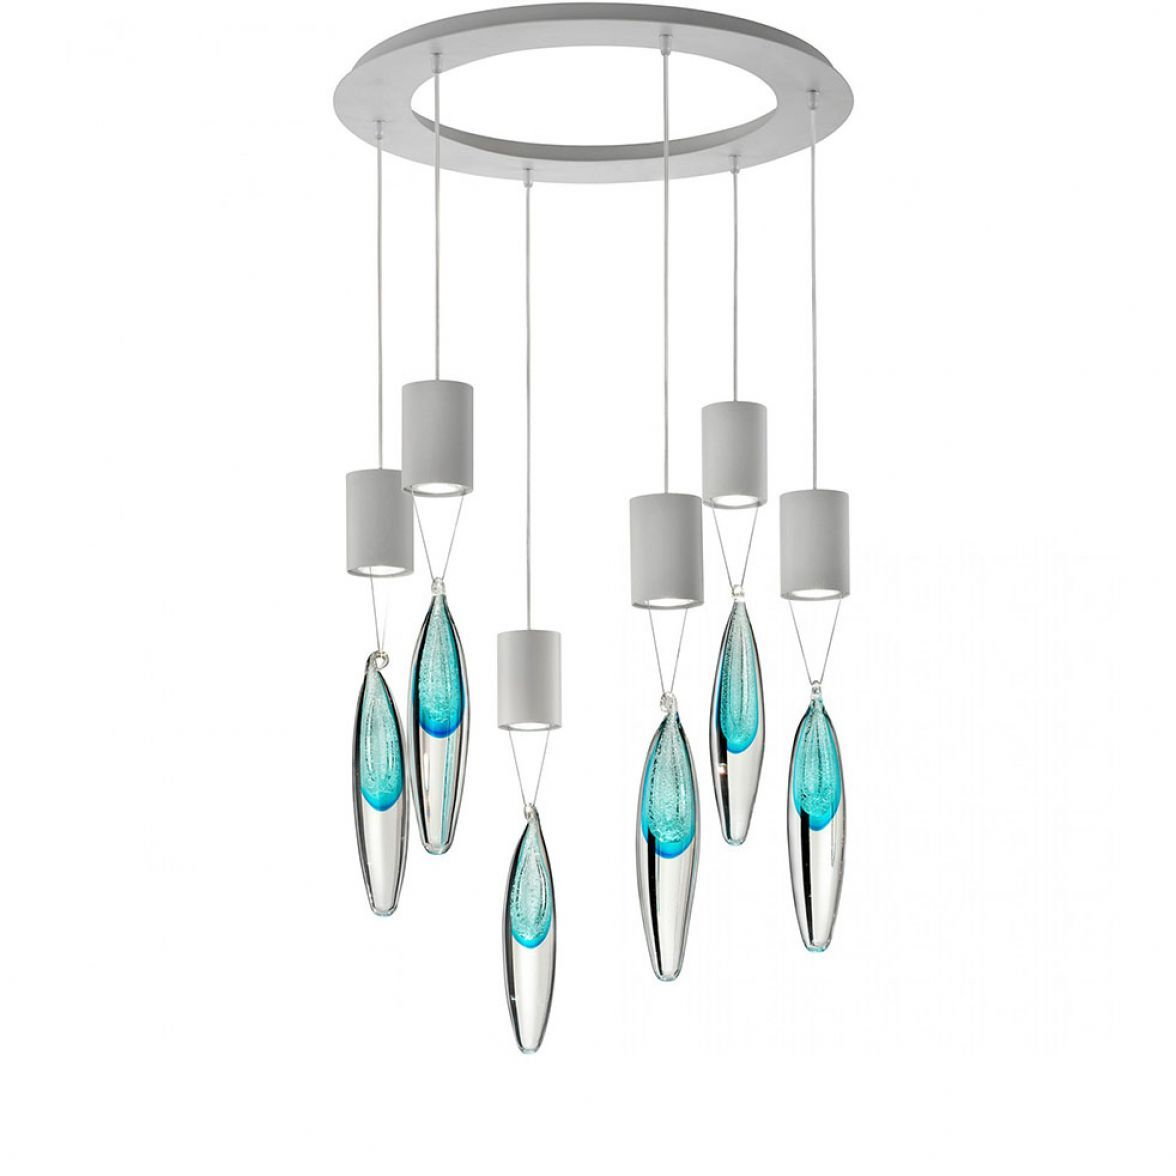 Anima ceiling light